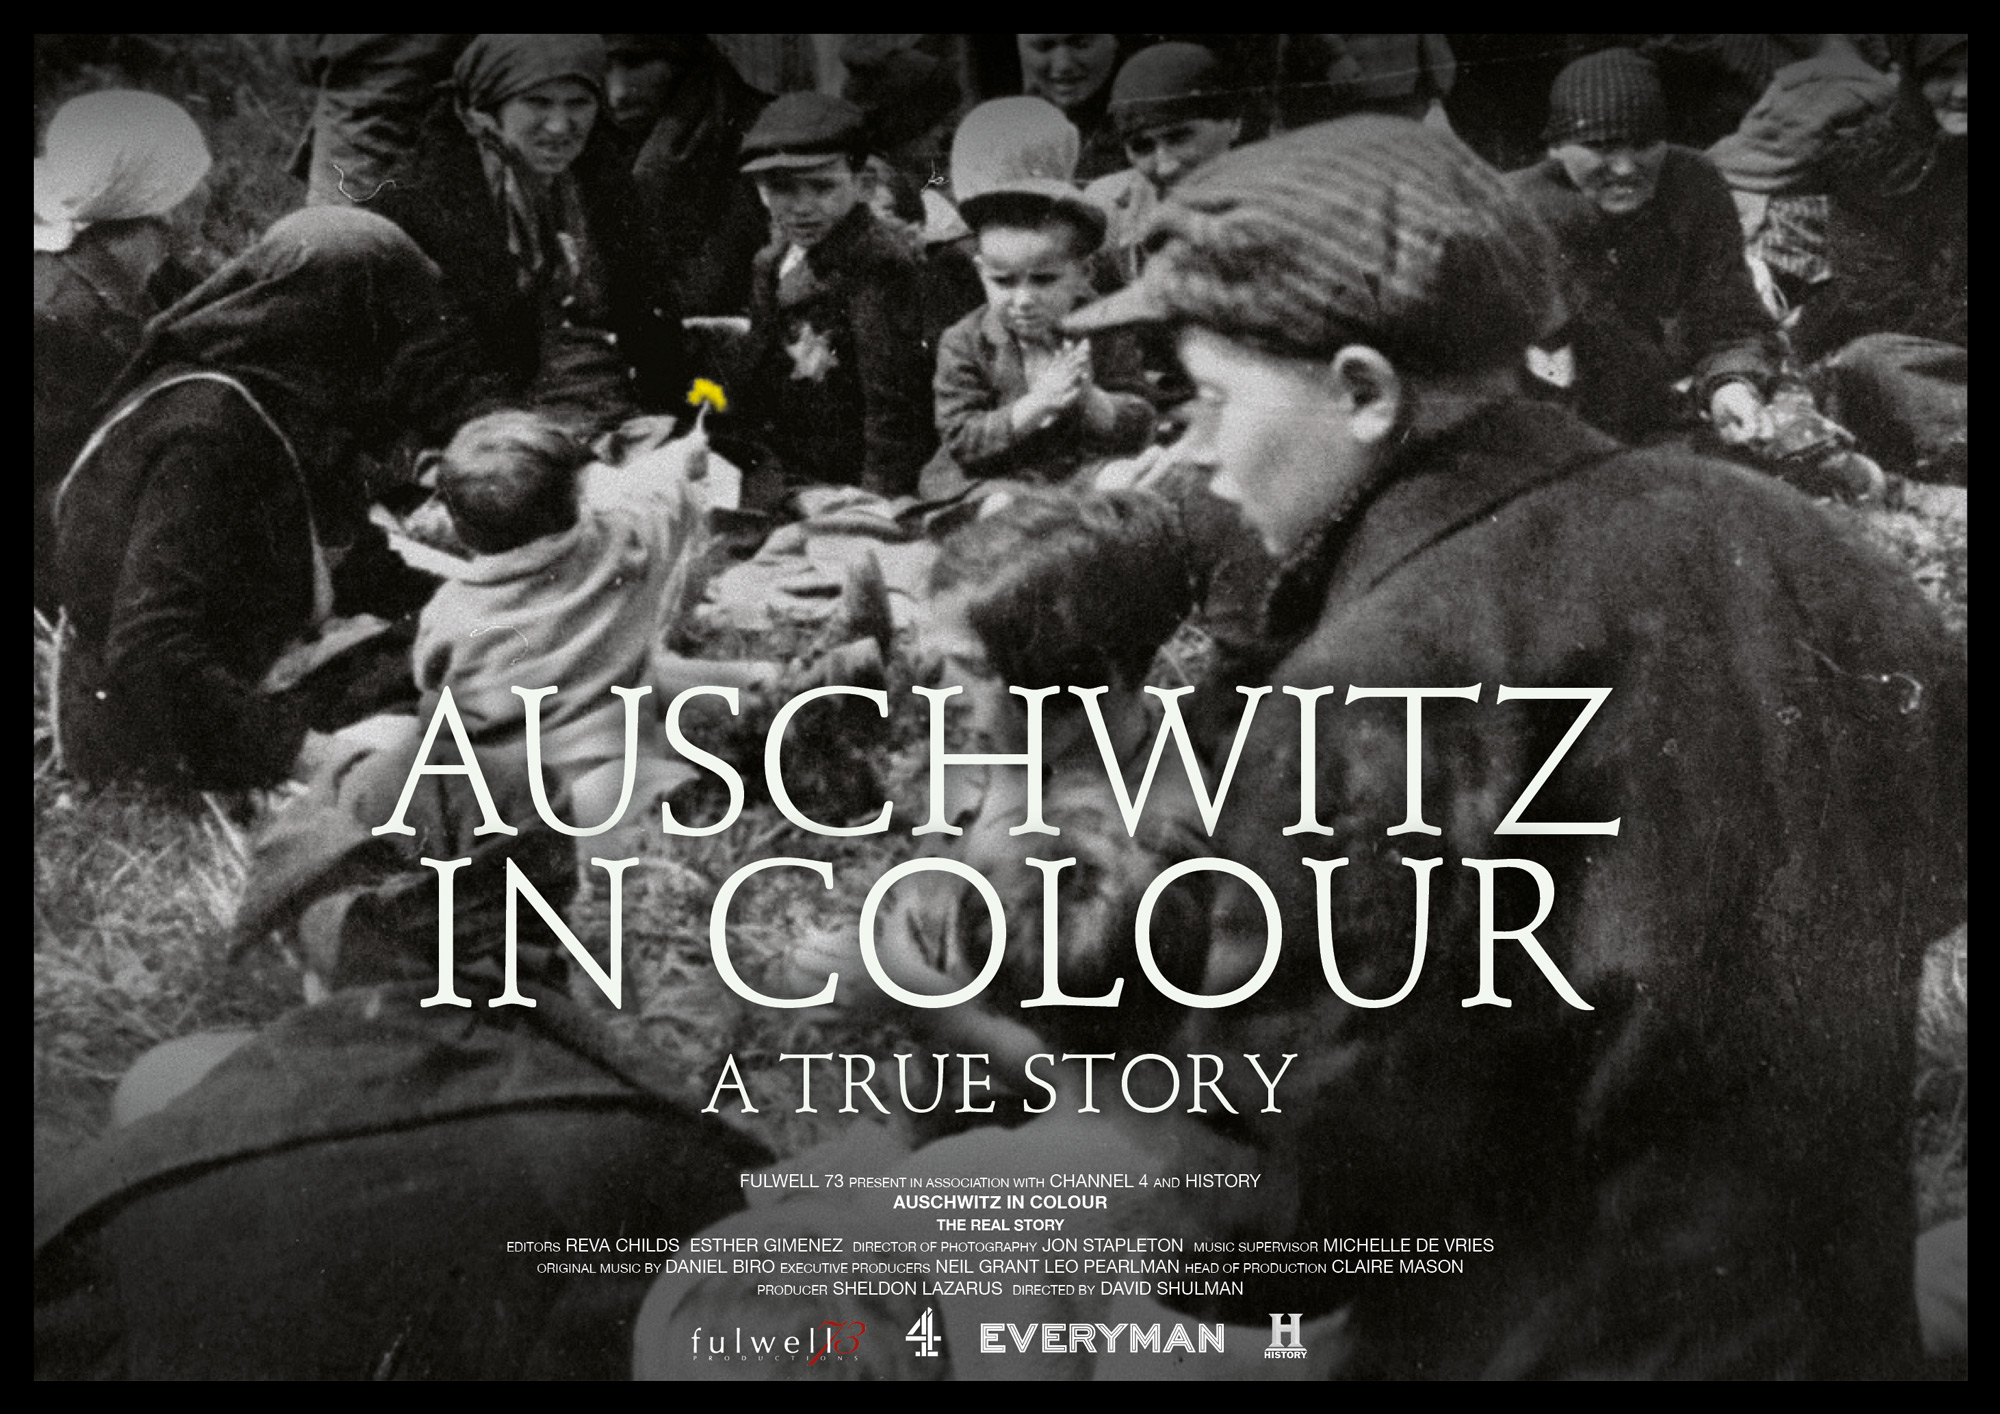 Promo image for Auschwitz Untold in Color